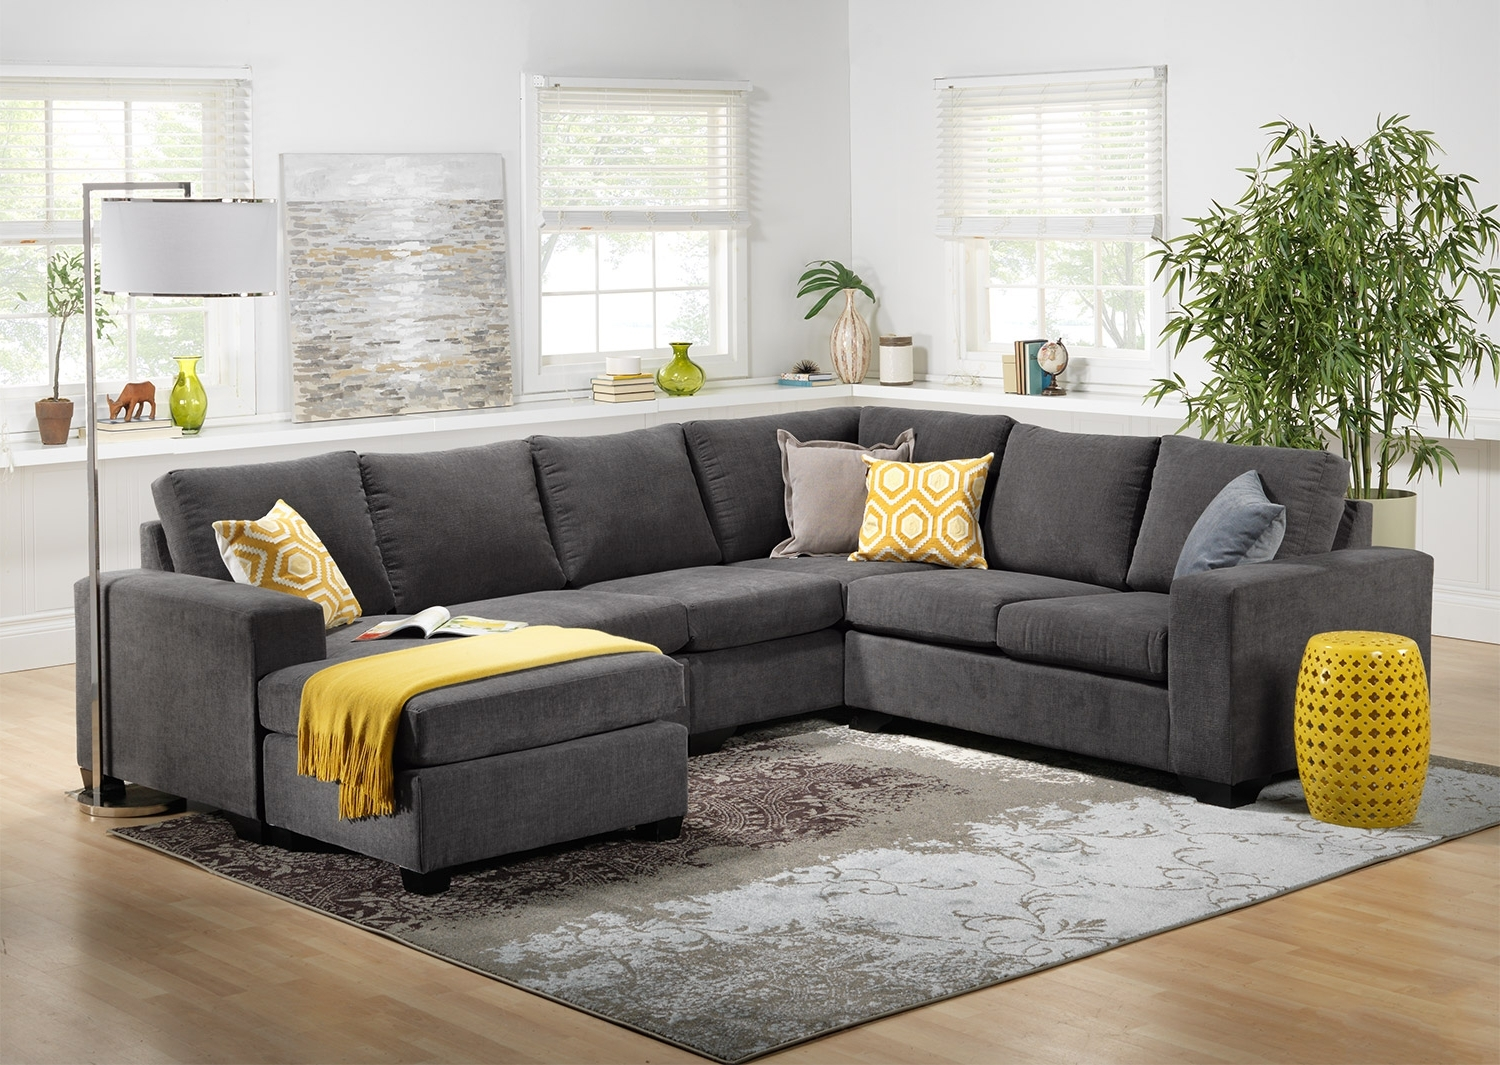 Best And Newest Hickory Nc Sectional Sofas In Living Room Design : Stacy Furniture Living Room Sectional Hickory (View 1 of 15)